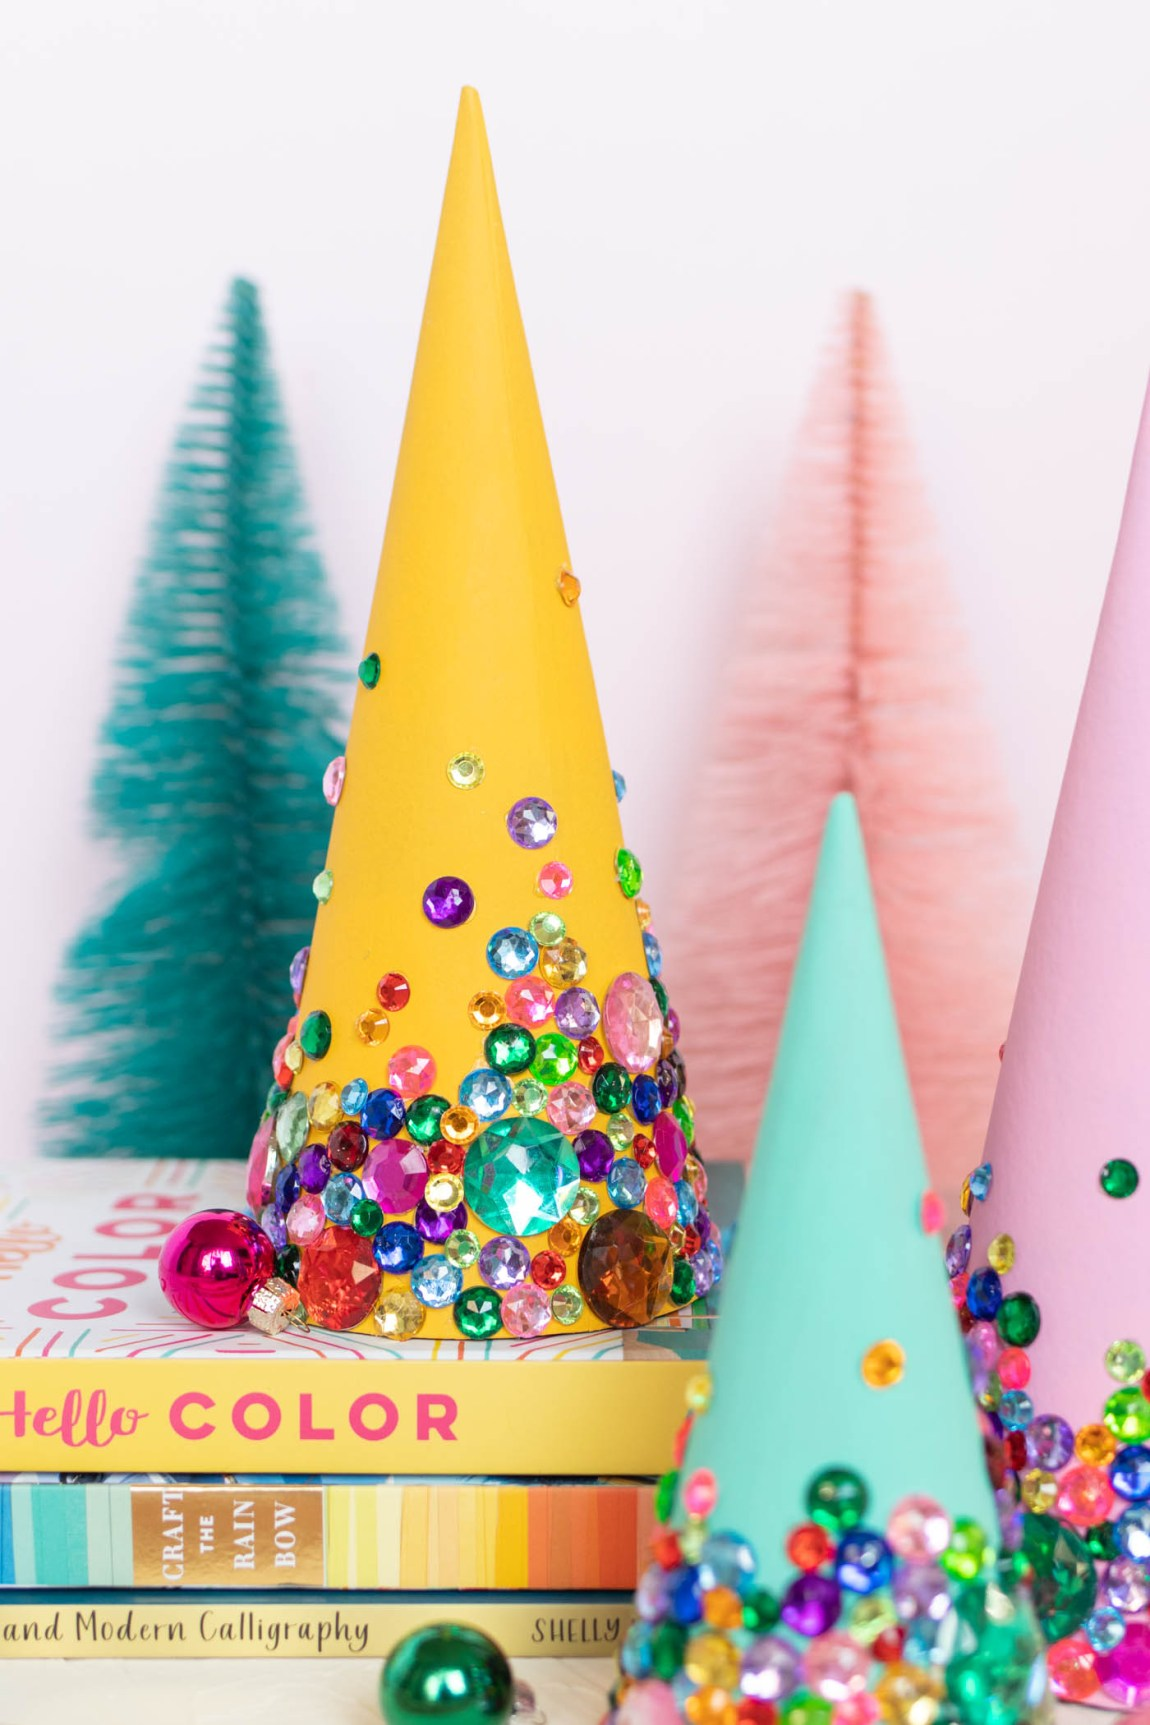 DIY Colorful Rhinestone Tree Decorations // Decorate mache cones with colorful paint and rhinestones to make sparkly tree decorations! These easy DIY Christmas trees make great mantel decor or shelf accessories for the holiday season! #christmasdiy #christmas #christmasdecor #painting #rhinestones #holidaydecor